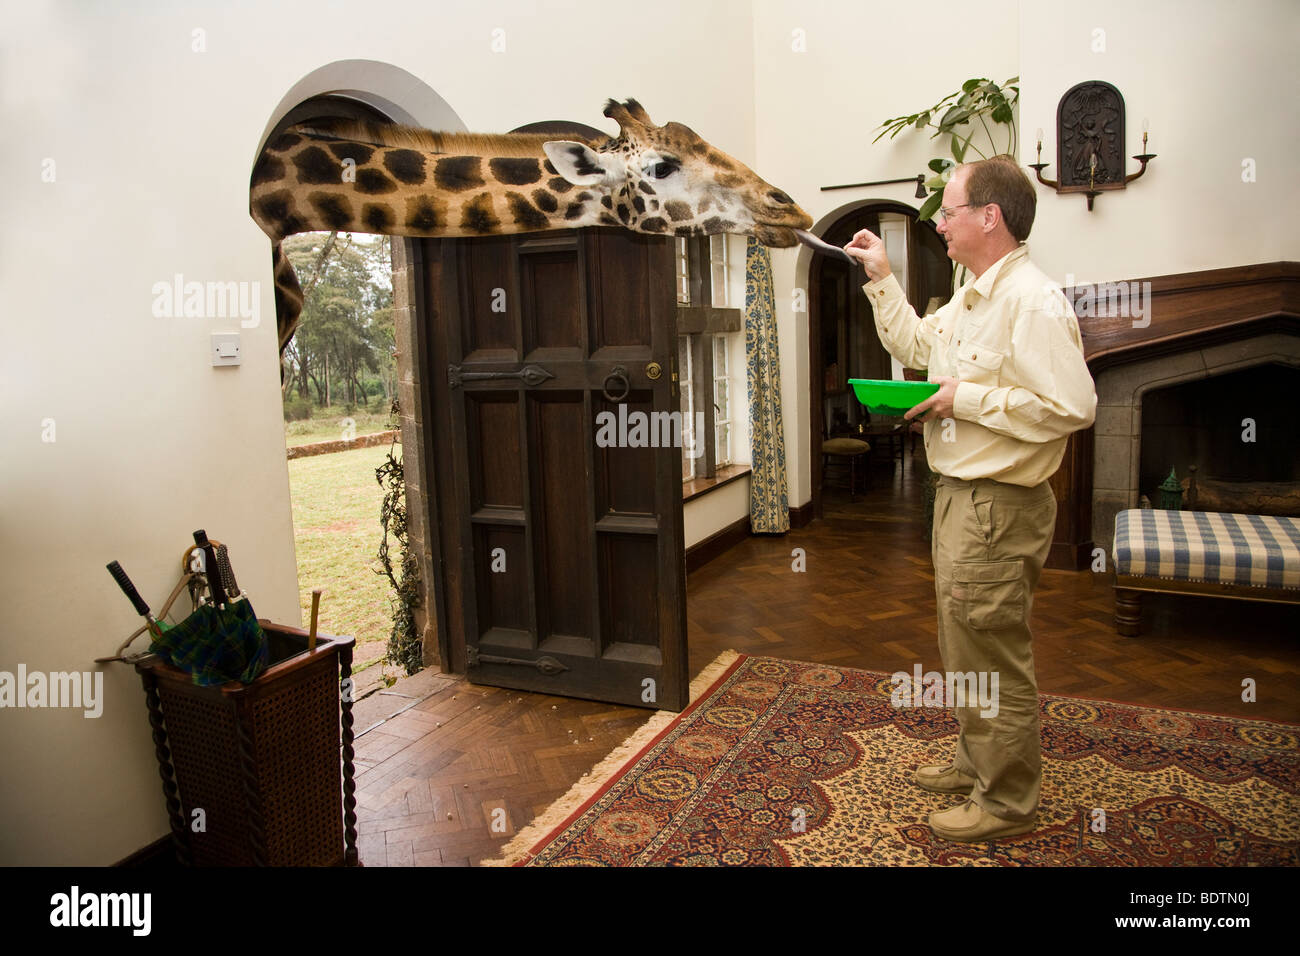 Male tourist at Giraffe Manor, Nairobi, Kenya feeding a giraffe sticking its head through the open doorway into - Stock Image